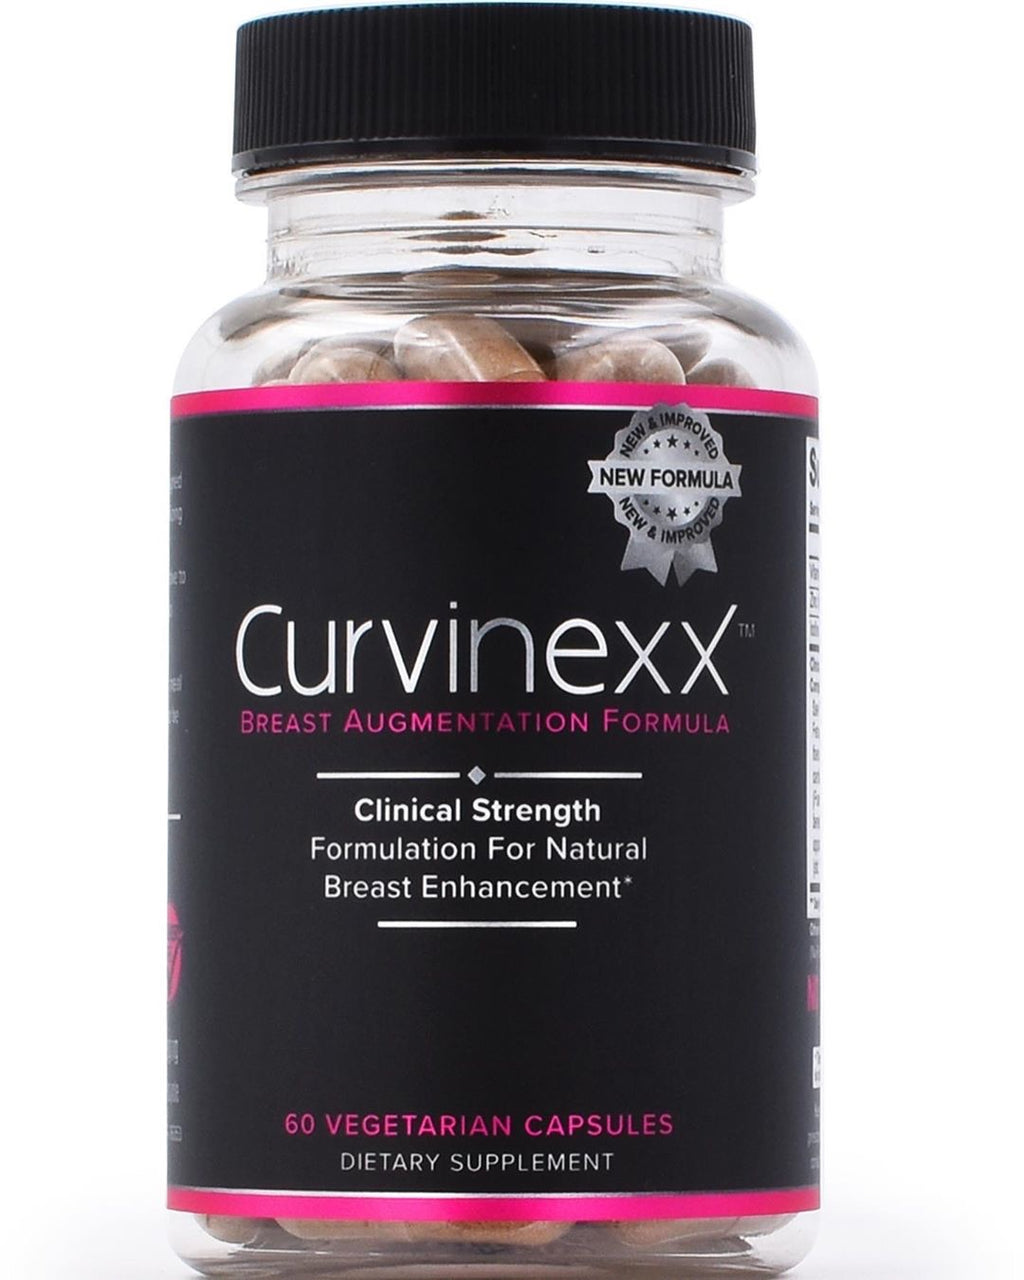 curvinexx breast augmentation formula